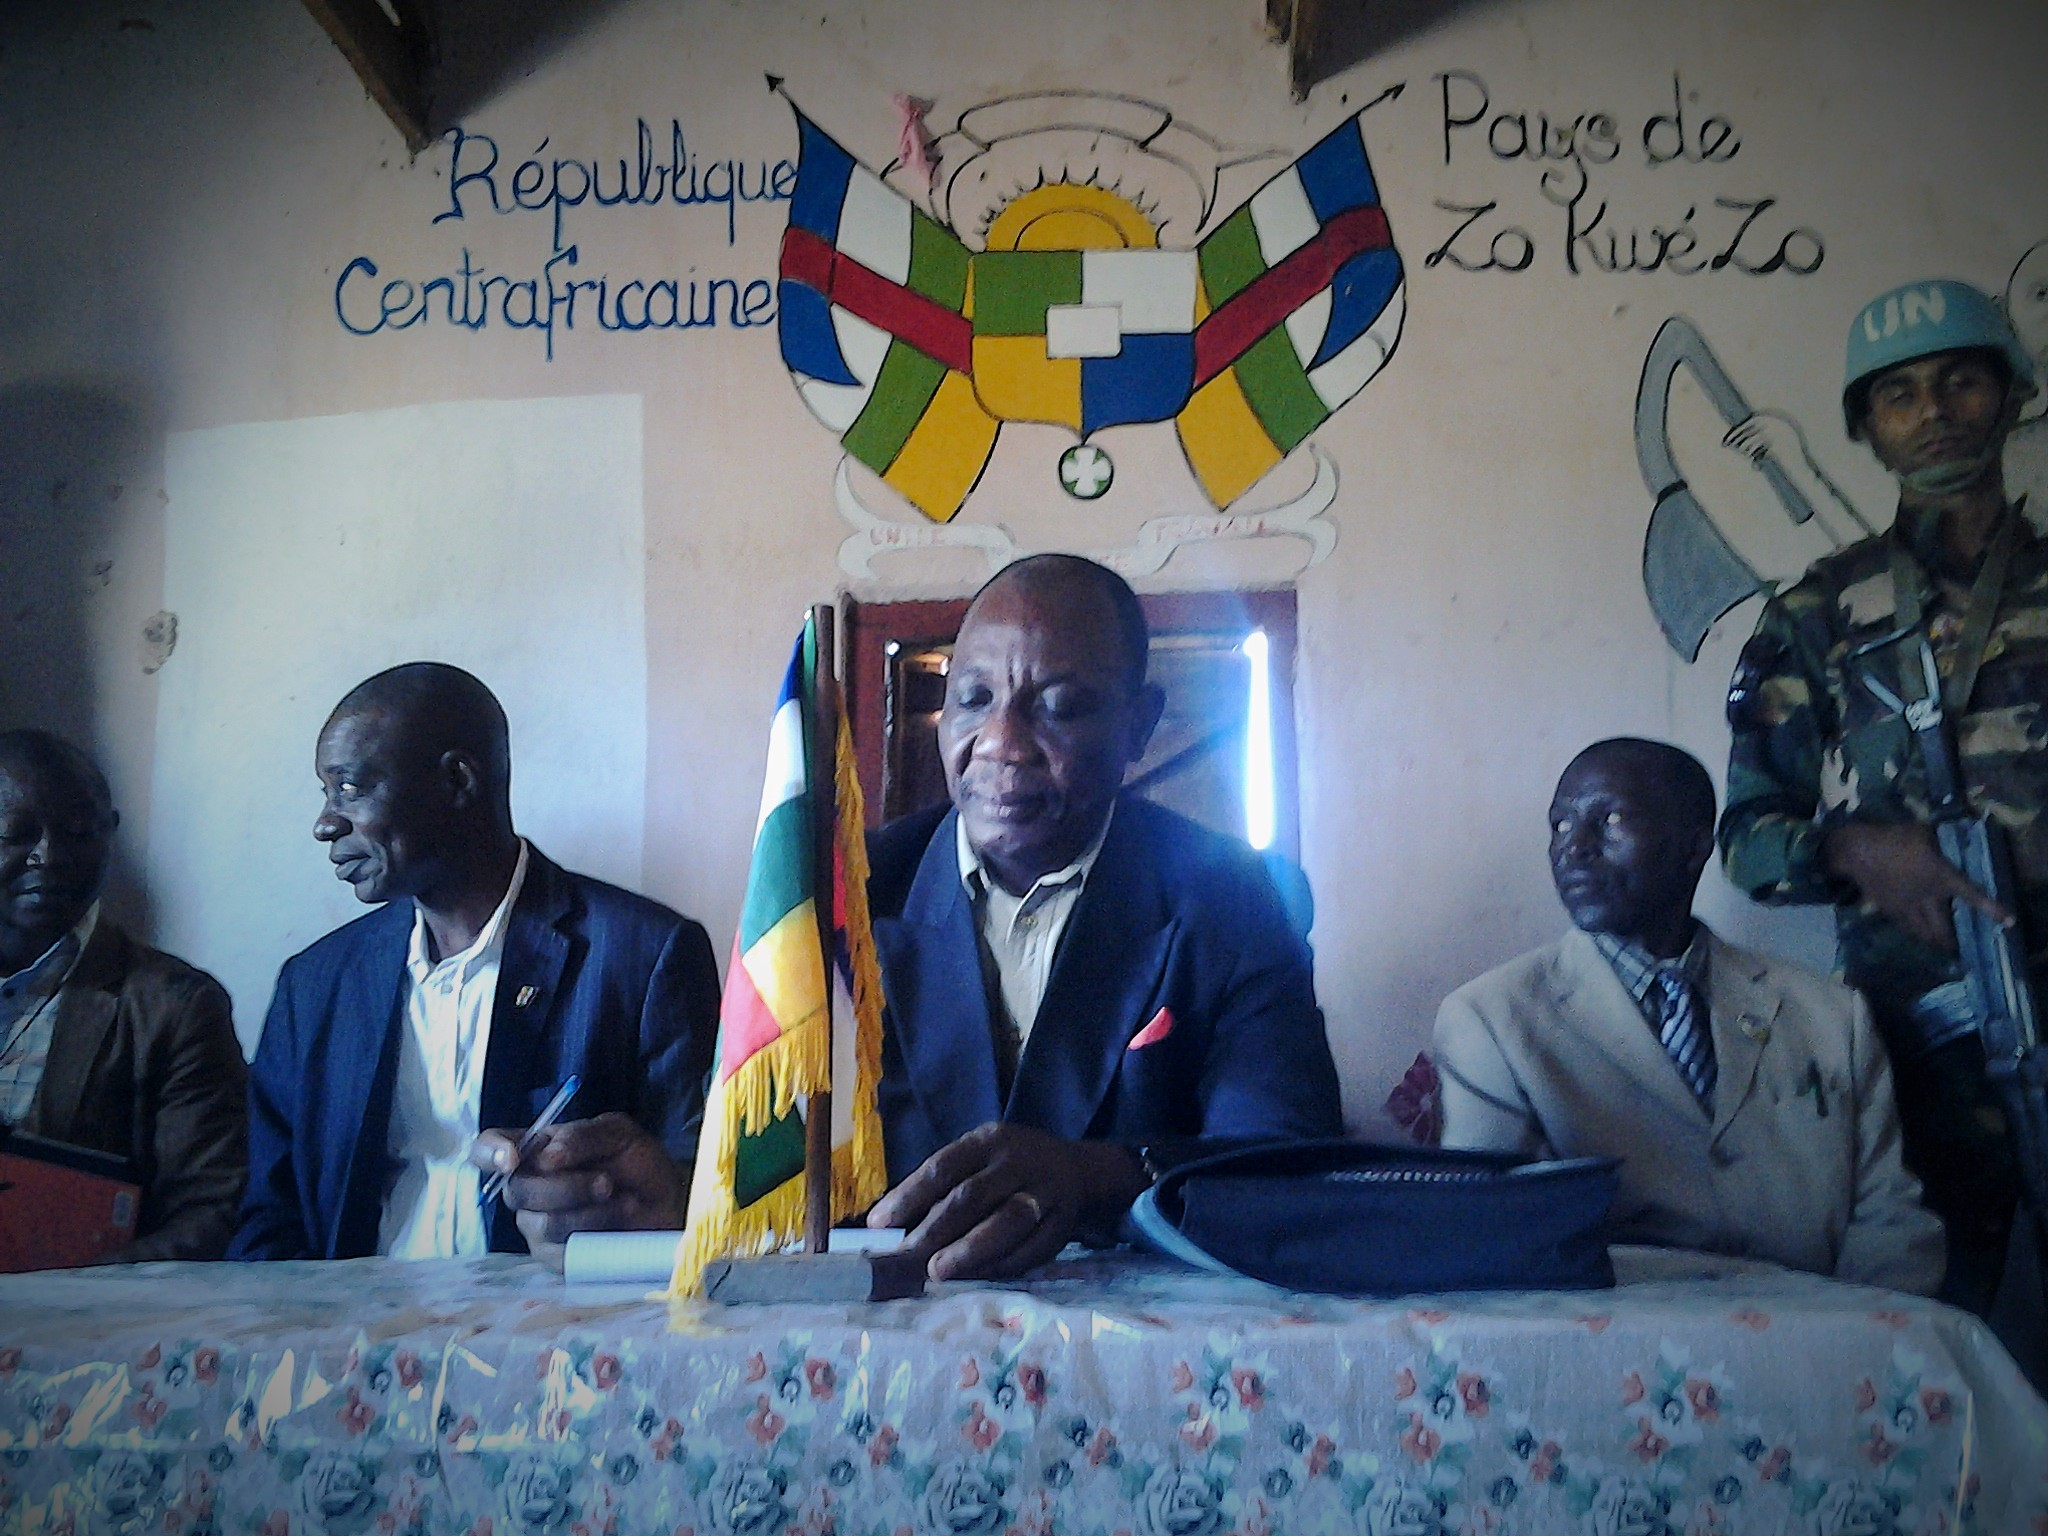 Minister of Communications Victor Wake leads consultations in the town of Baoro in April 2015 as part of reconciliation efforts in the Central African Republic